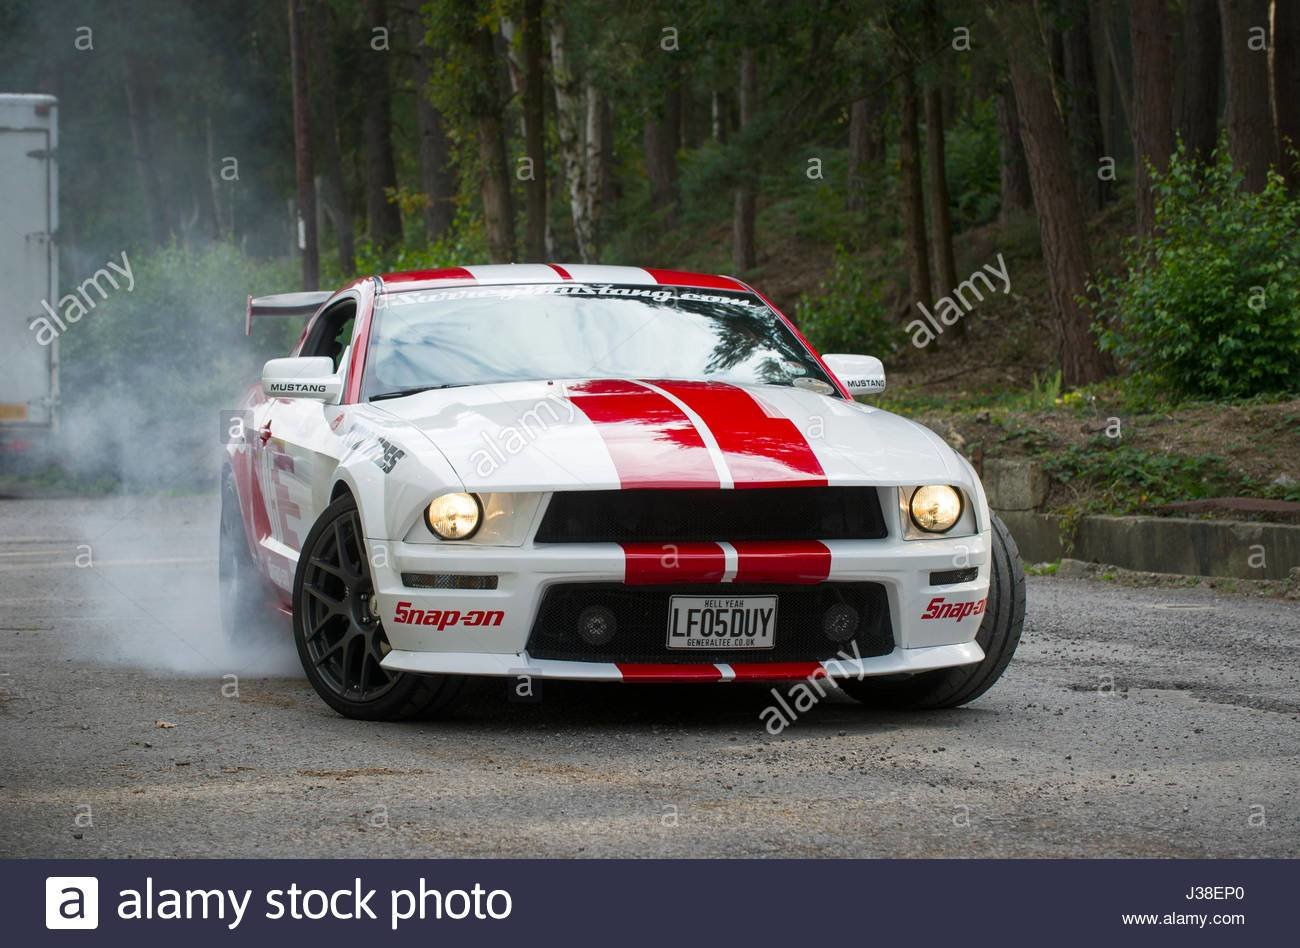 Latest 2005 Custom Ford Mustang American Muscle Car Stock Photo Free Download